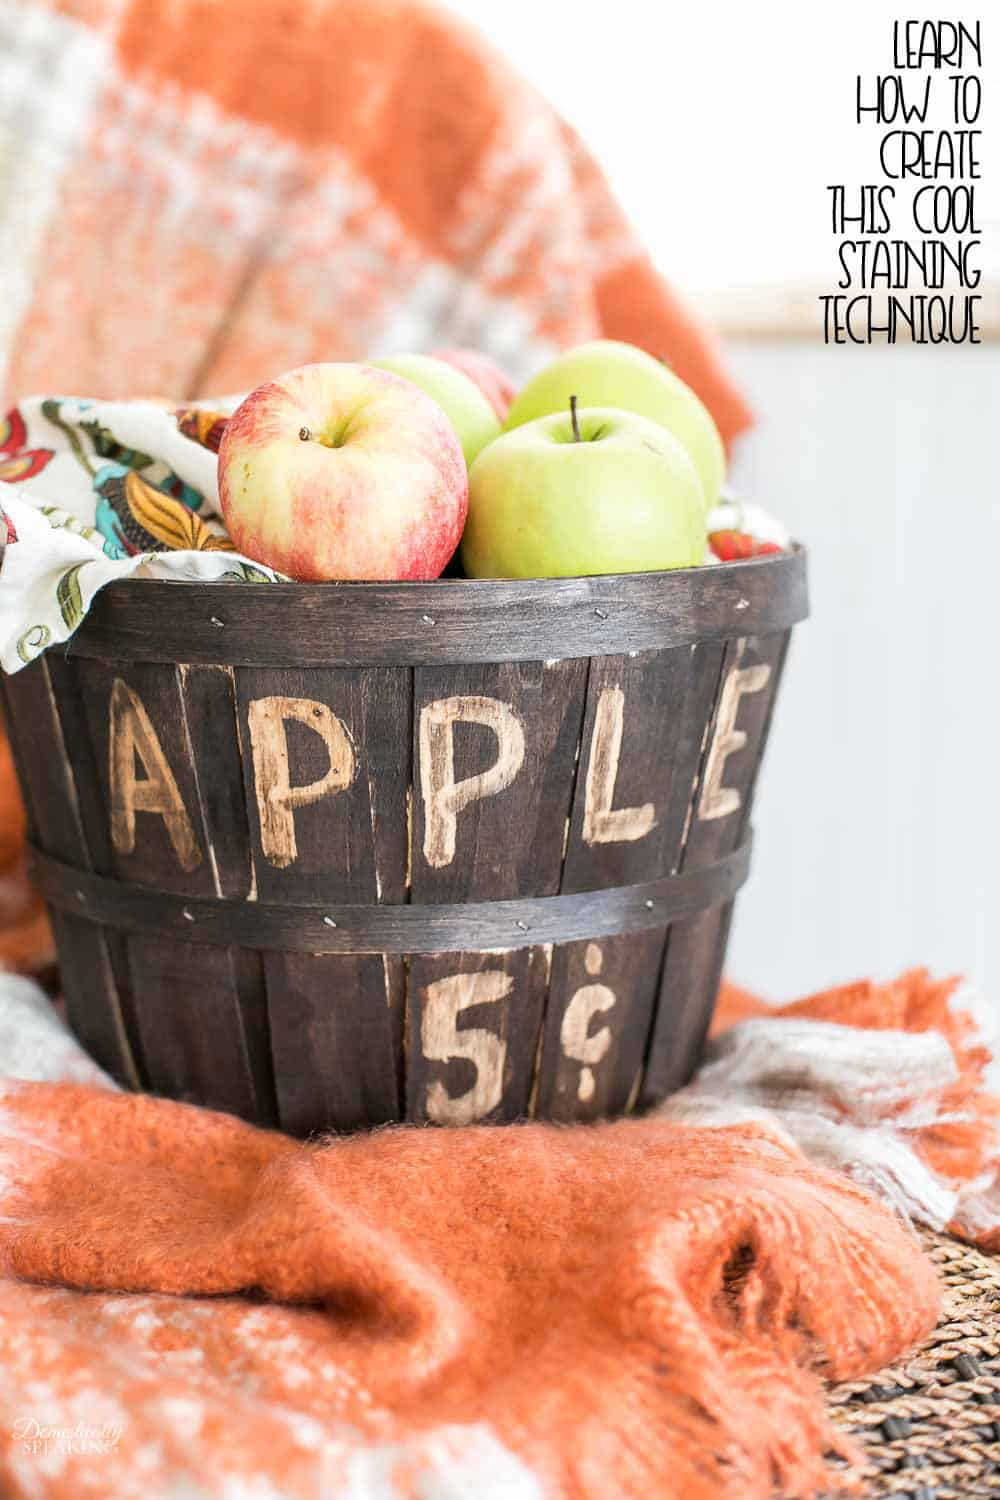 Thrift store apple basket transformed with stain and a cool technique.  Get all the detail on how to do this easy stain technique yourself to create fun stain projects.